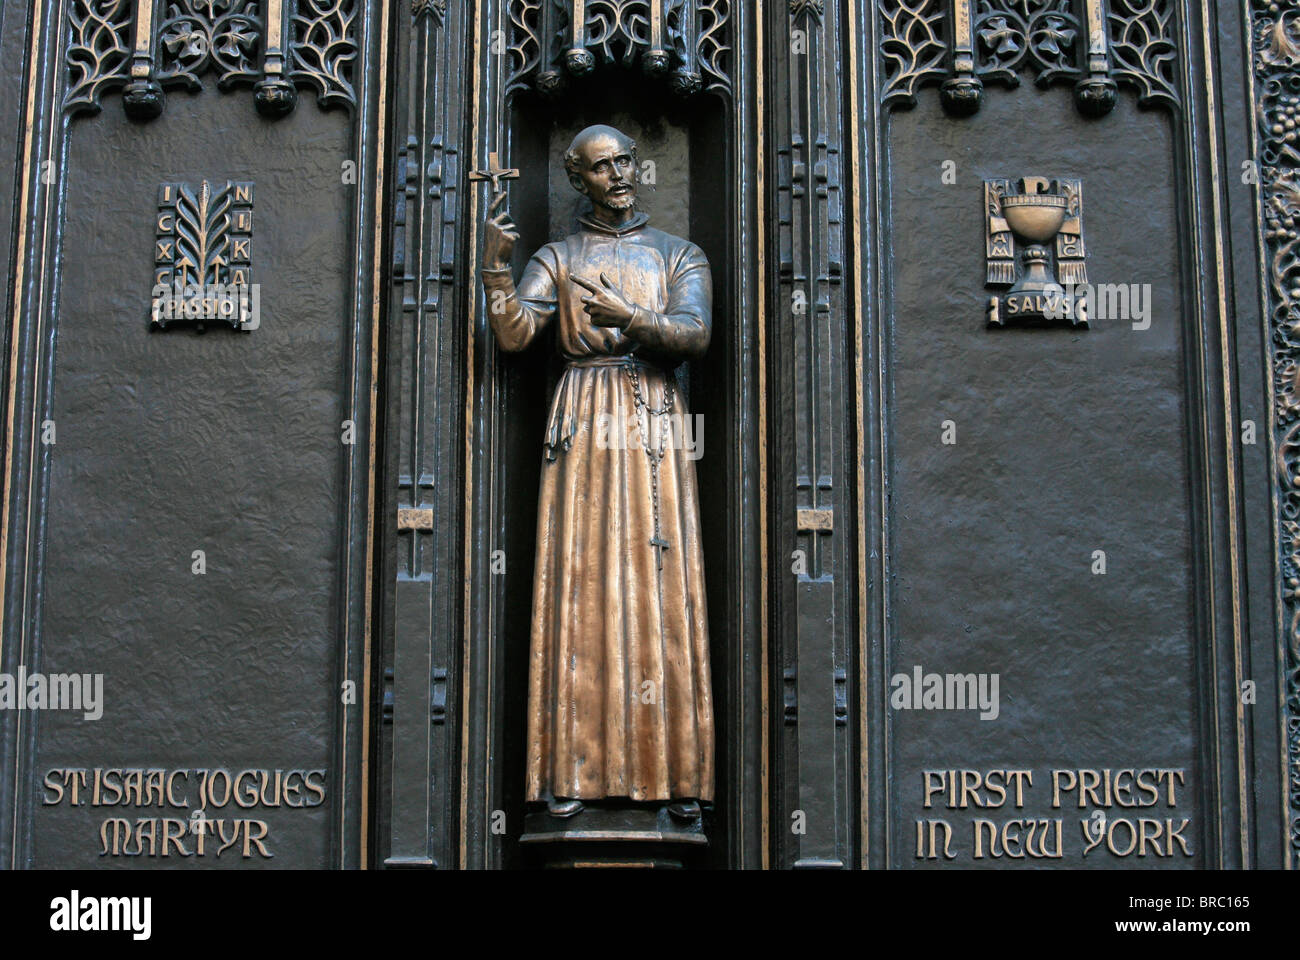 Front gate sculpture of St. Isaac Jogues, New York's first Catholic priest, St. Patrick's Cathedral, New - Stock Image